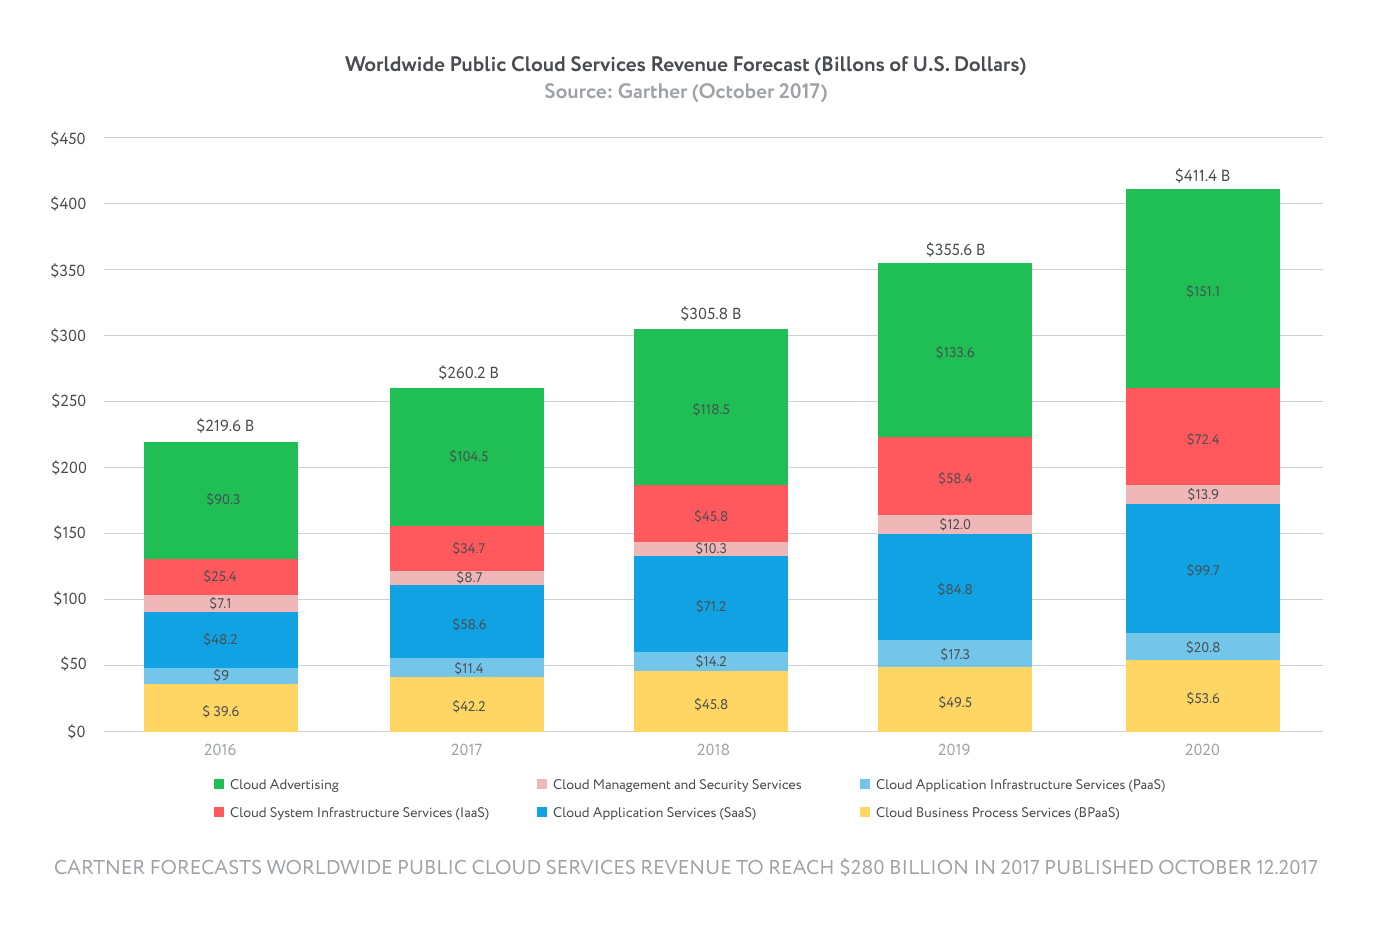 Worldwide public cloud services revenue forecast